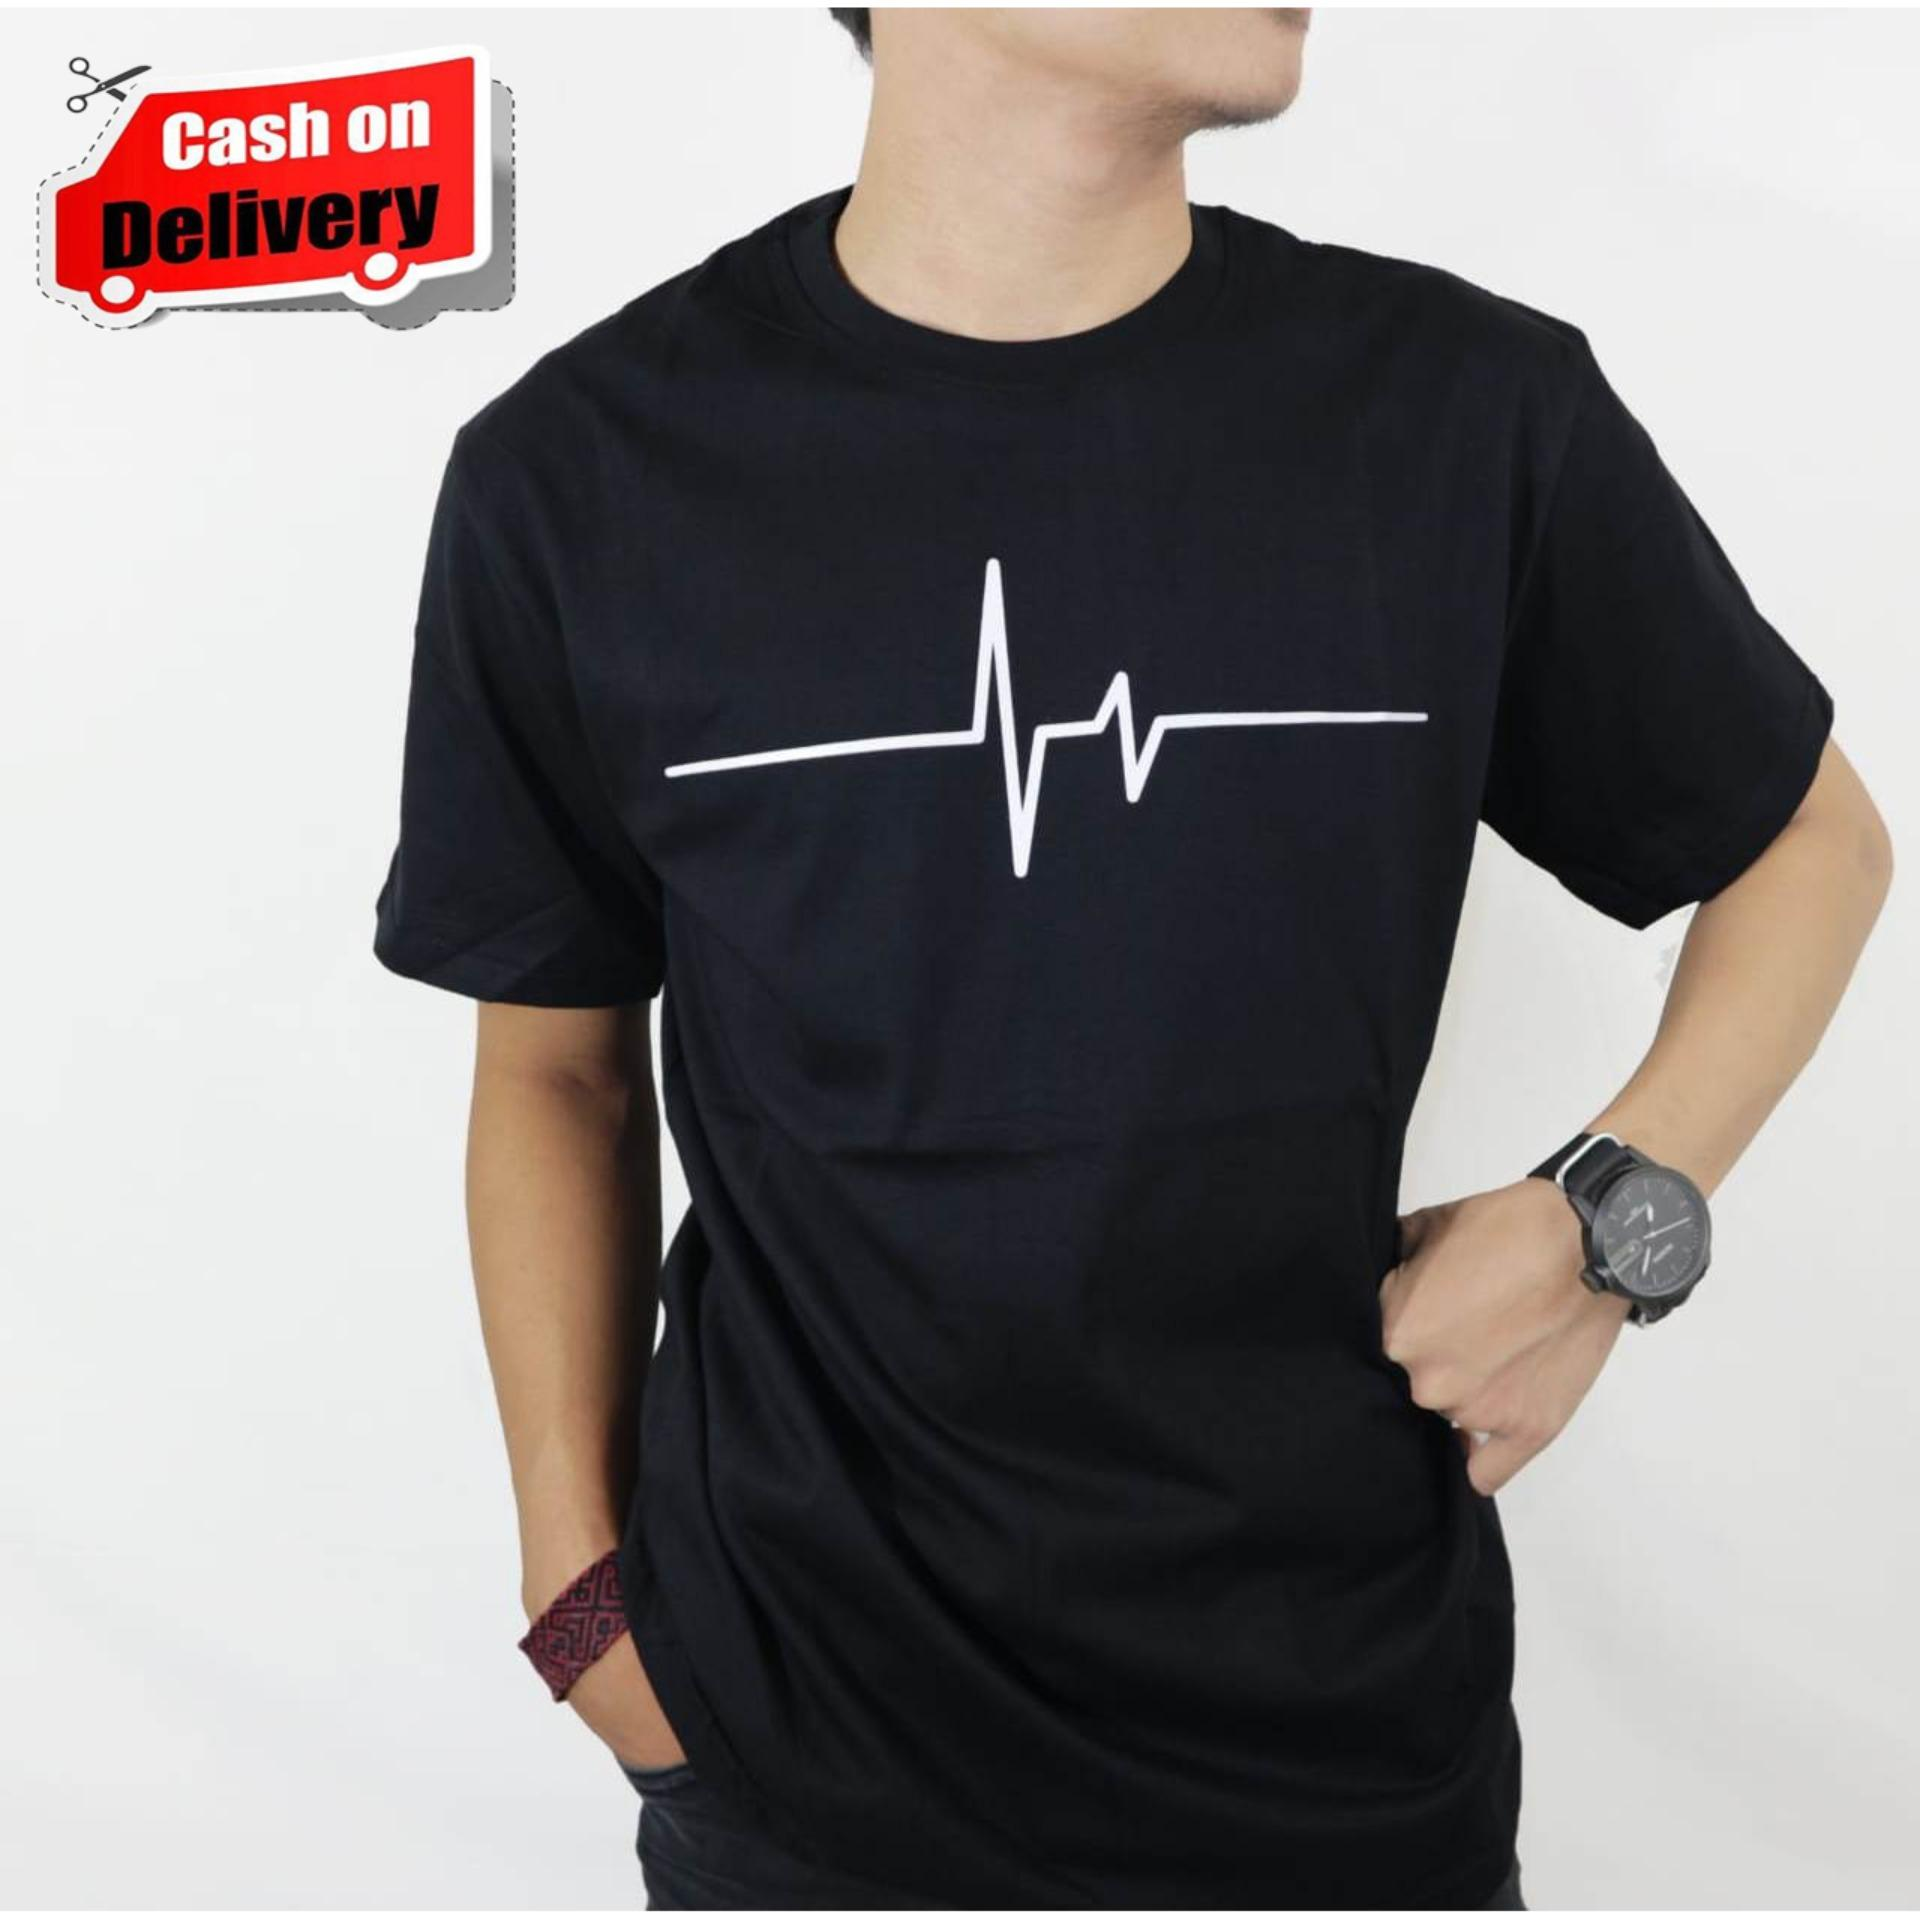 Presiden Fashion - kaos distro T-shirt fashion 100% soft cotton combed 30s kaos